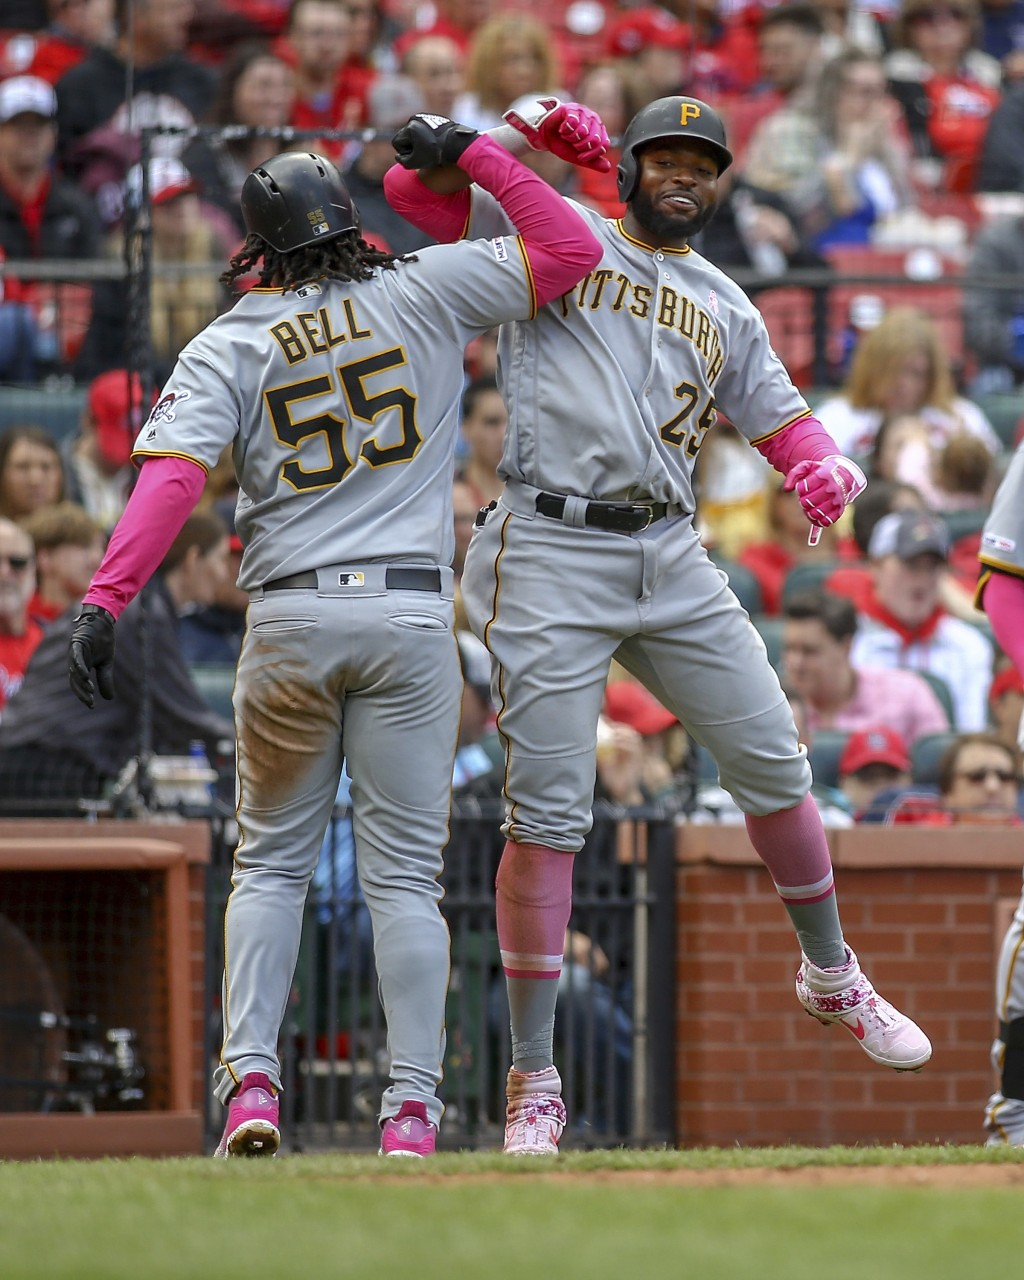 Pittsburgh Pirates' Josh Bell, left, celebrates with teammate Gregory Polanco after hitting a three-run home run during the seventh inning of a baseba...